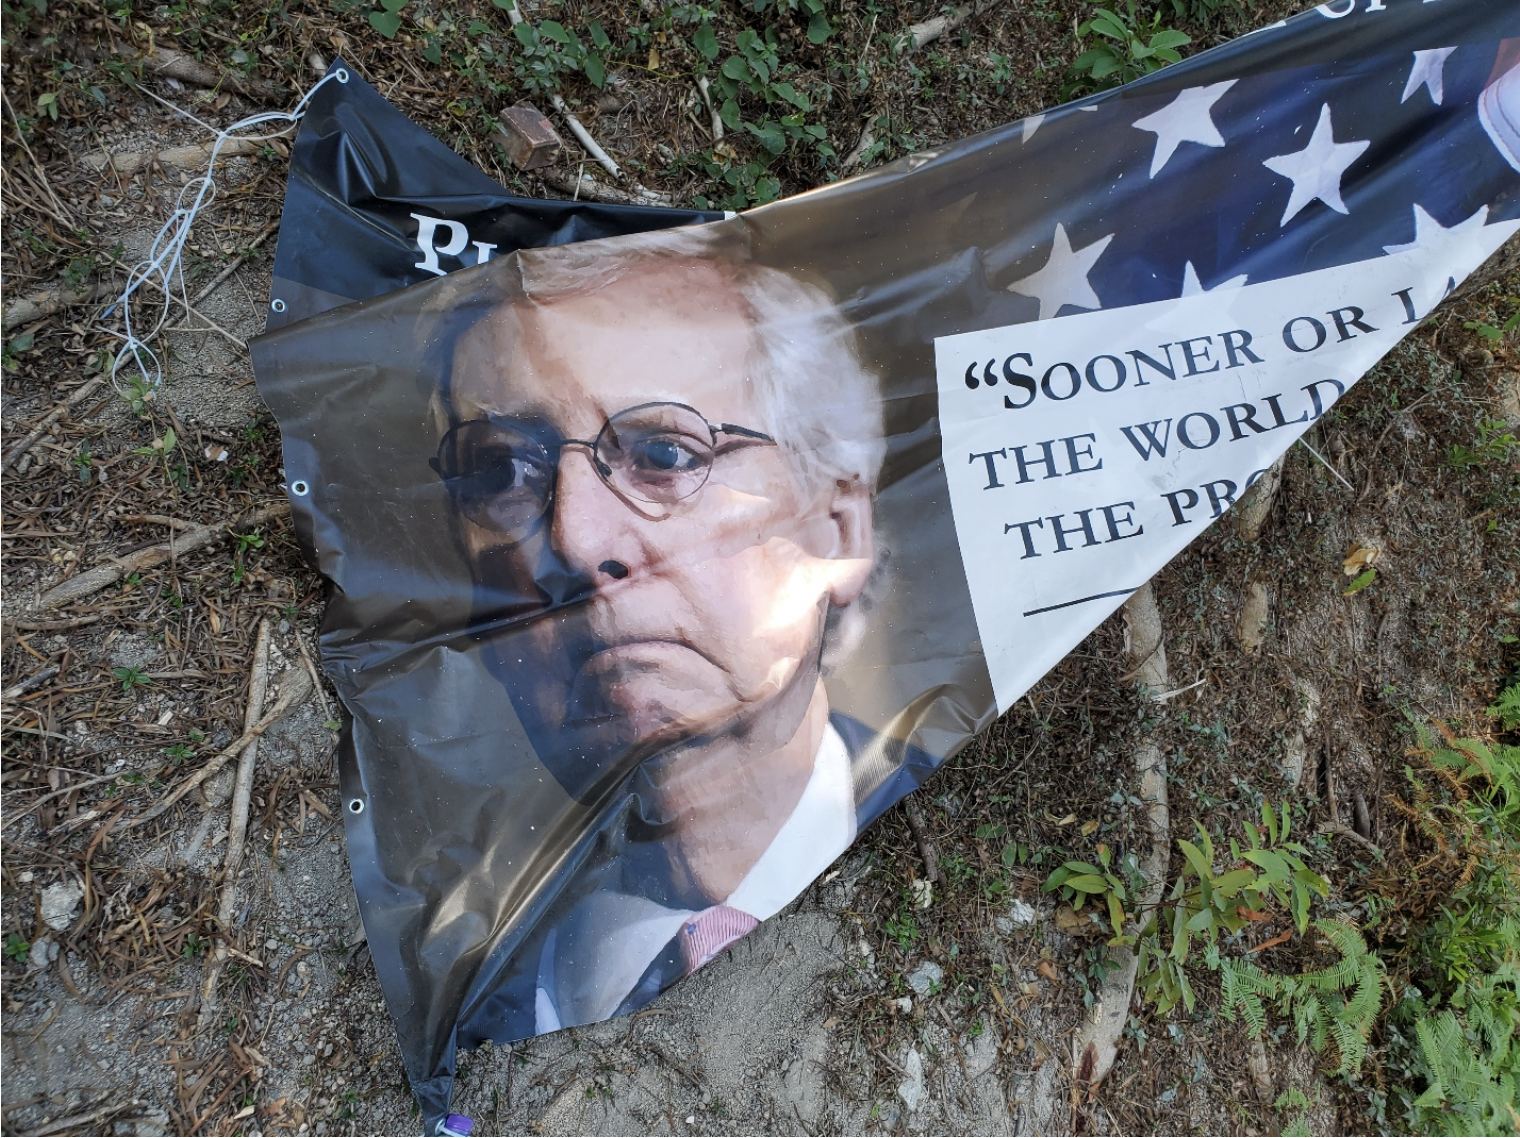 Part of a banner that shows a picture of Mitch McConnell and part of a quote from the Wall Street Journal.